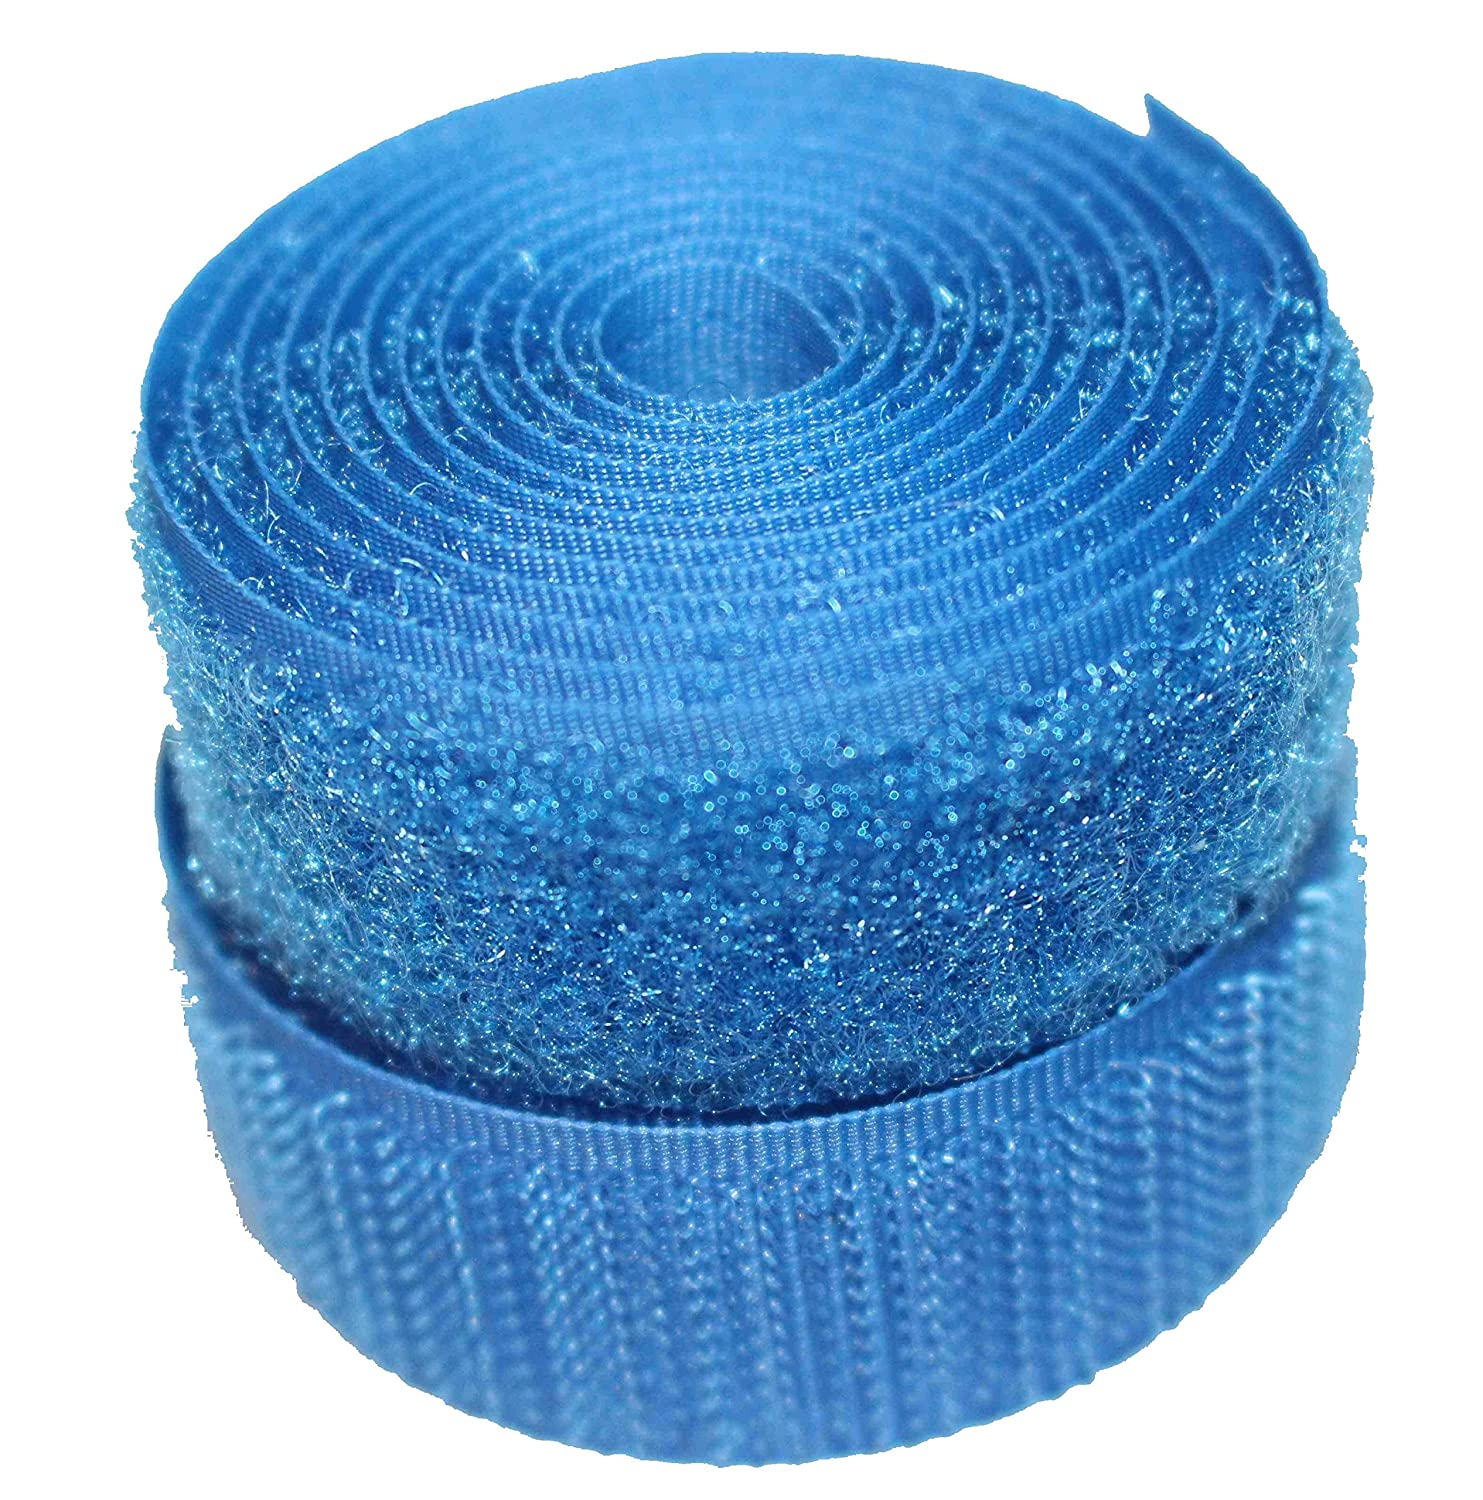 Royal Blue 20mm Sew-on Hook & Loop tape Alfatex® Brand supplied by the Velcro Companies - various lengths (25m) Alfatex® Brand supplied by the Velcro Companies